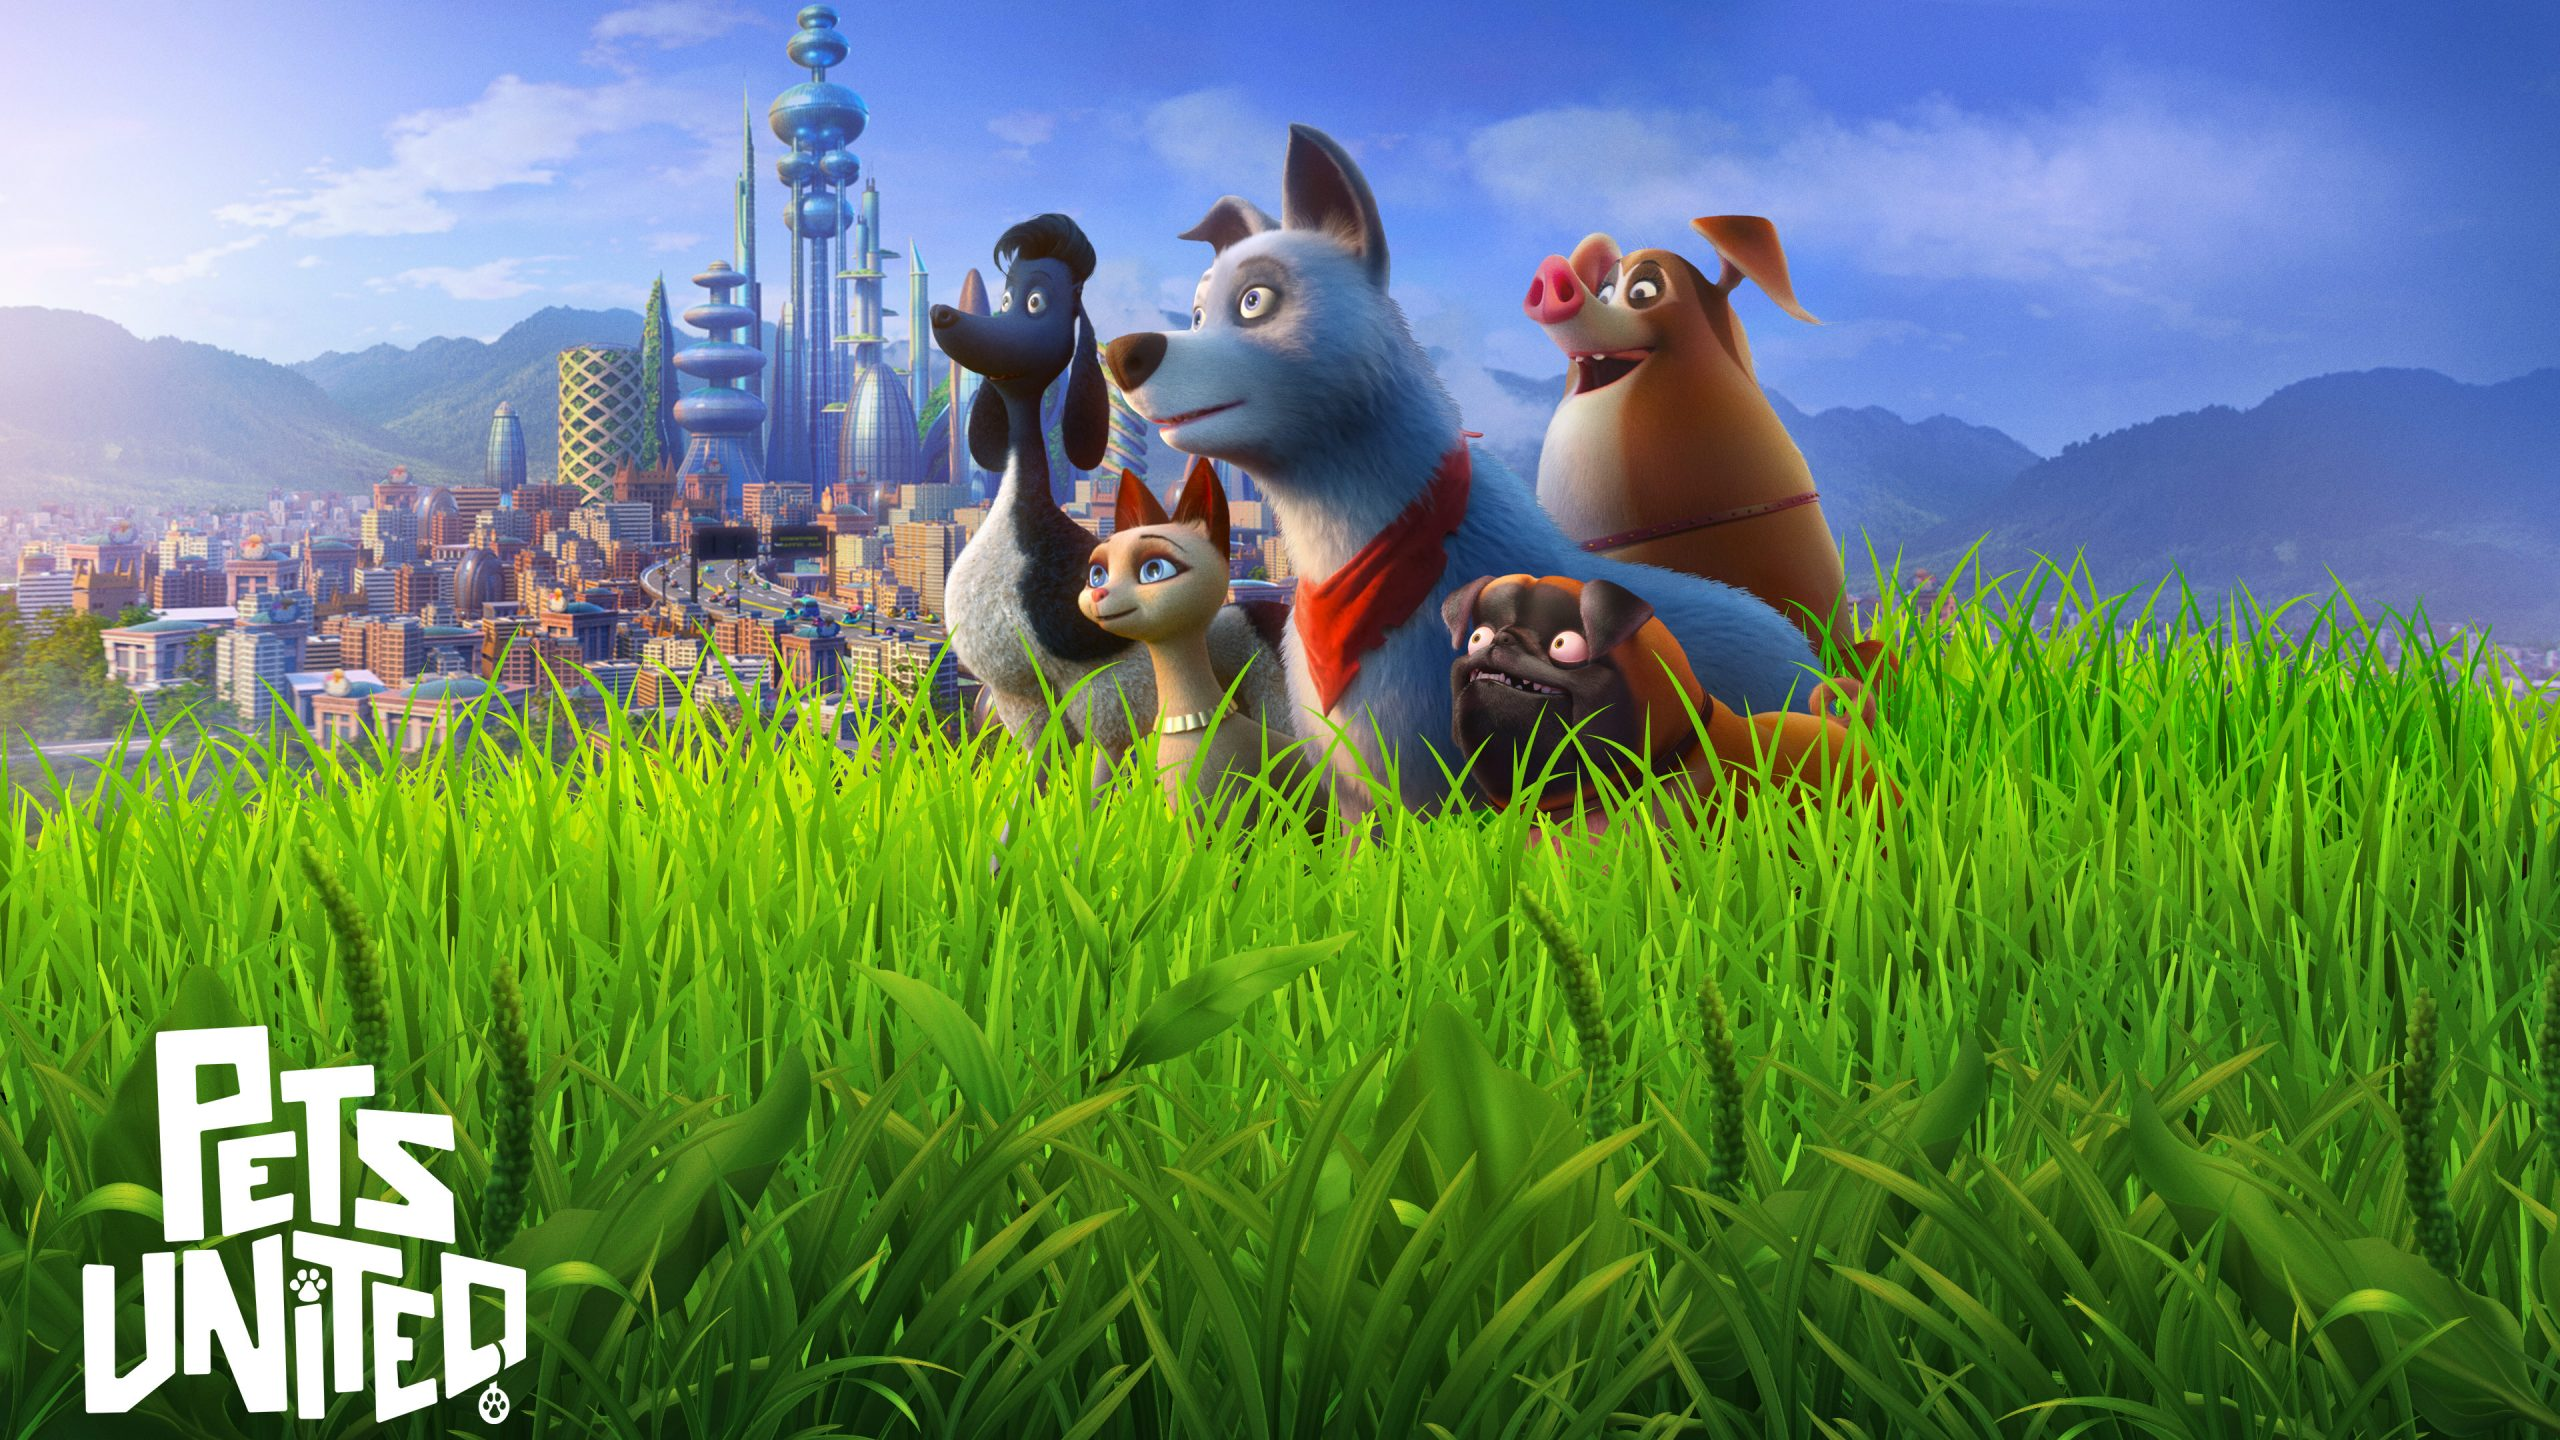 Pets United | Netflix Story Art Concept, Finishing & Illustration